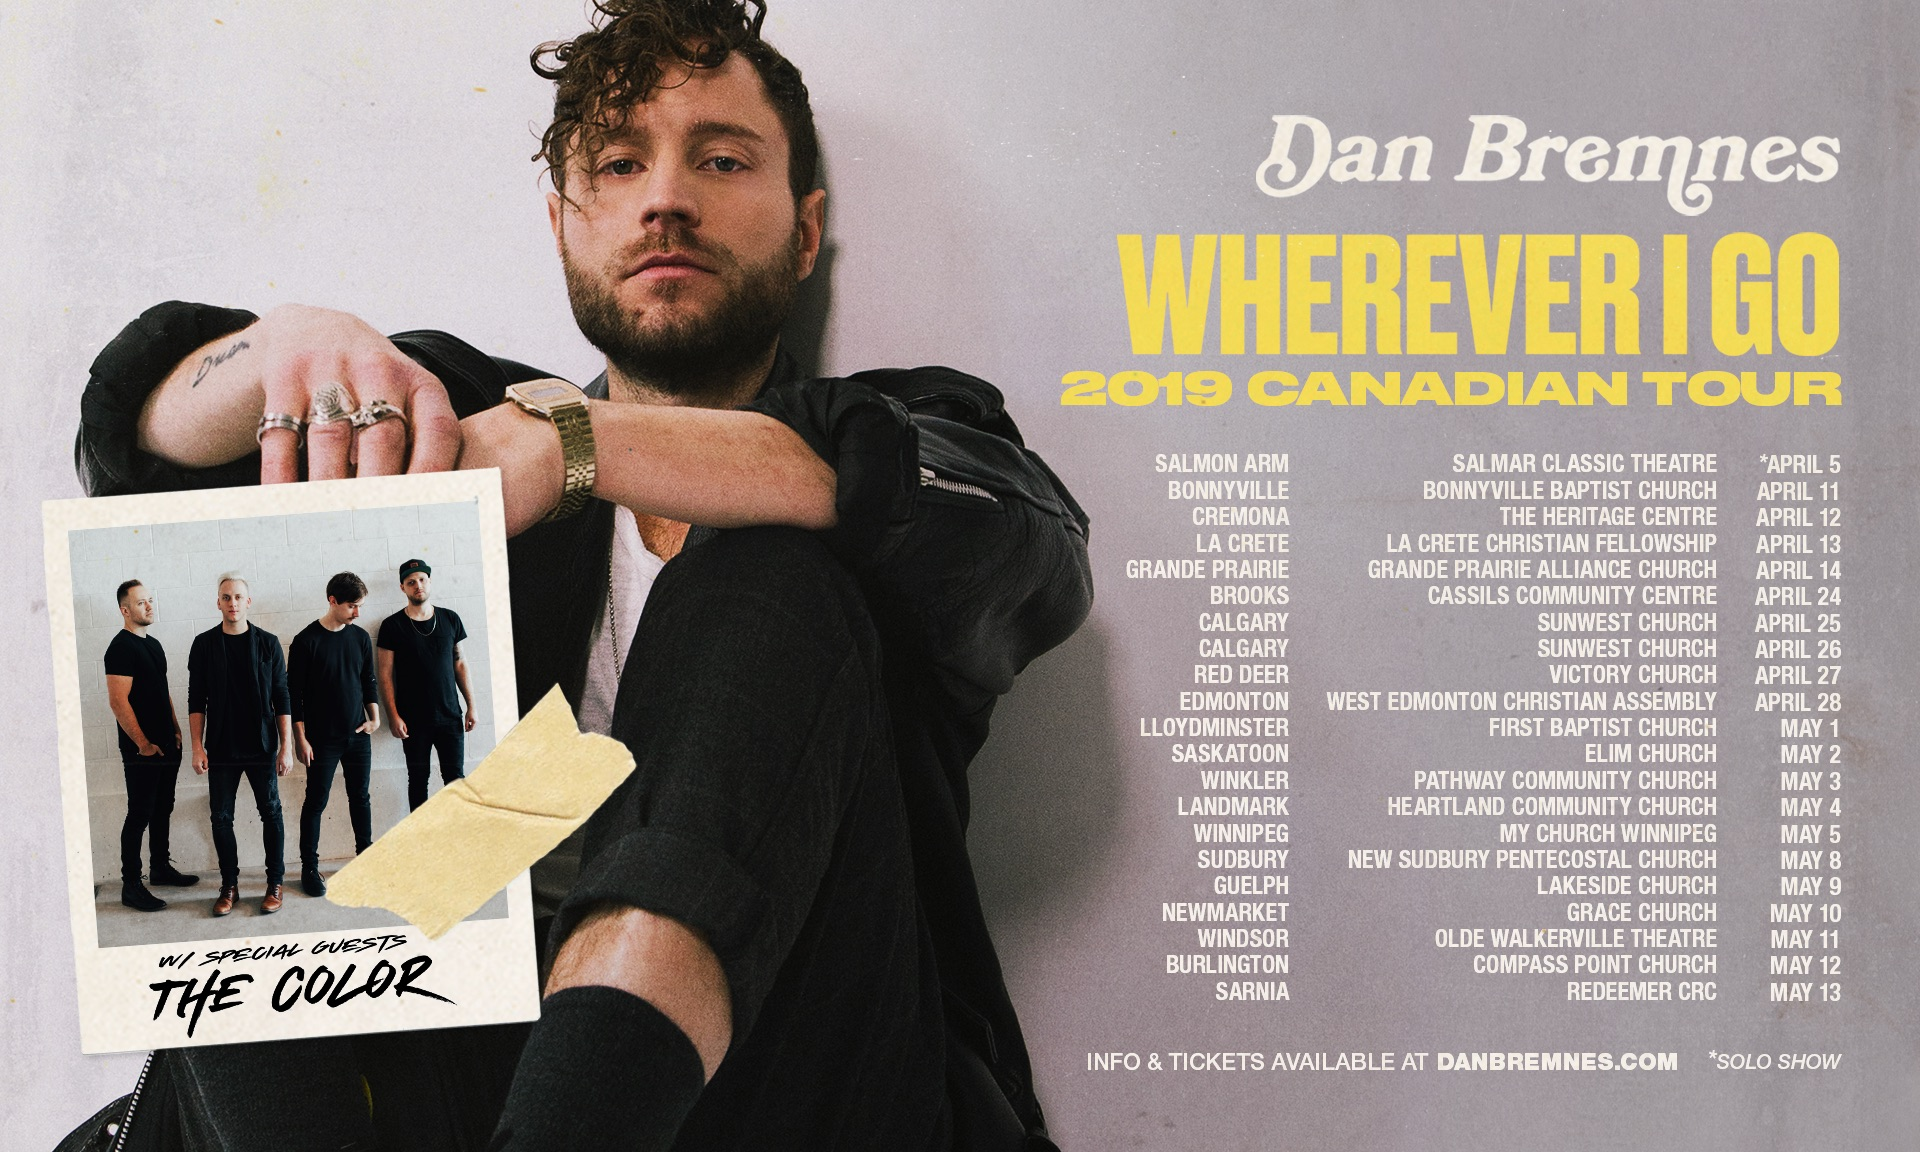 Tickets for Dan Bremnes, Wherever I Go Tour with The Color in Calgary from BuzzTix